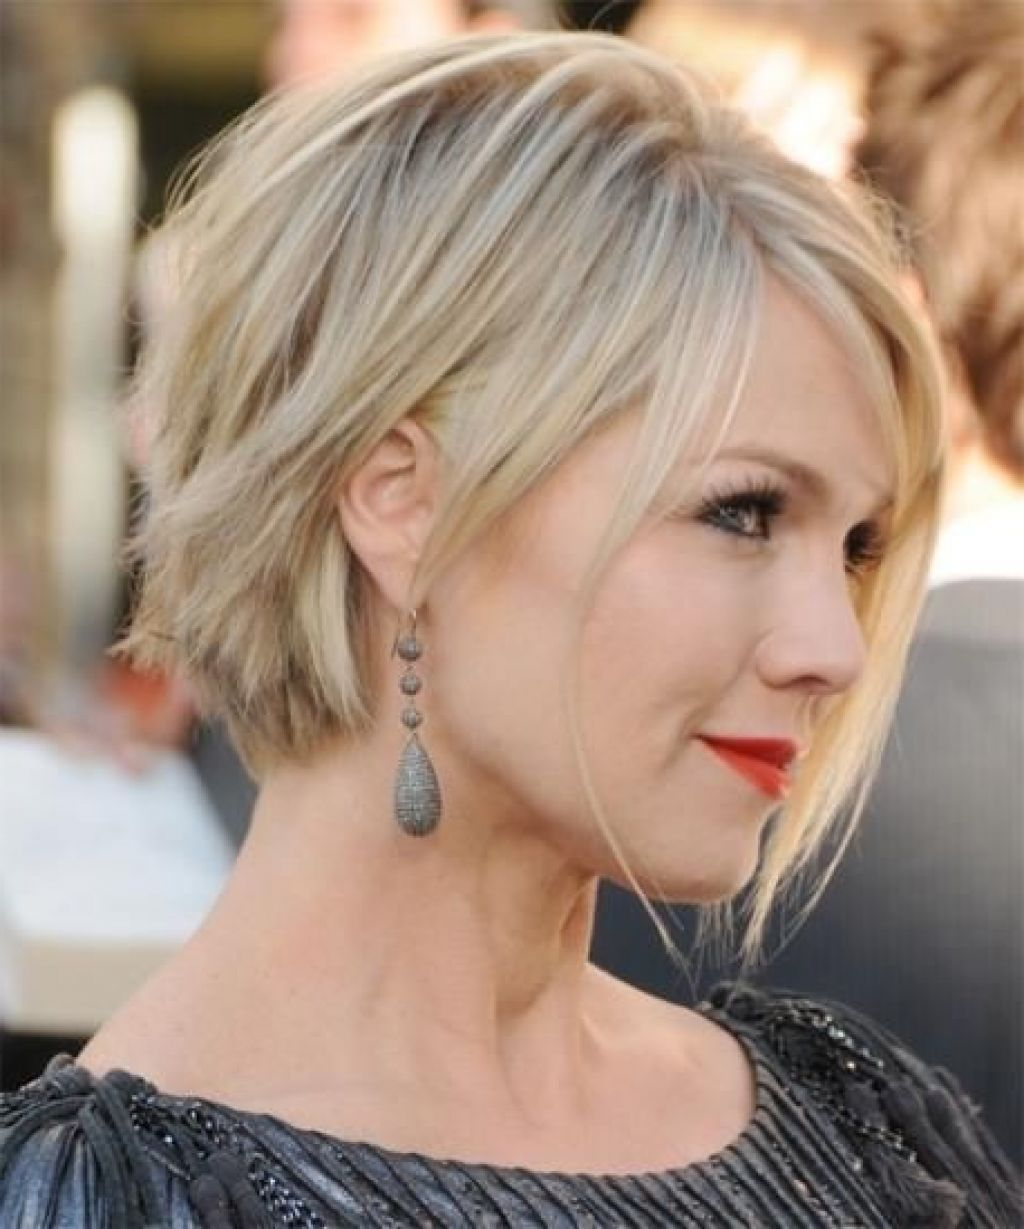 Short Hairstyles For Round Faces Women Haircuts Choppy Bob Hairstyles For Fine Hair Choppy Hair Short Hair Model